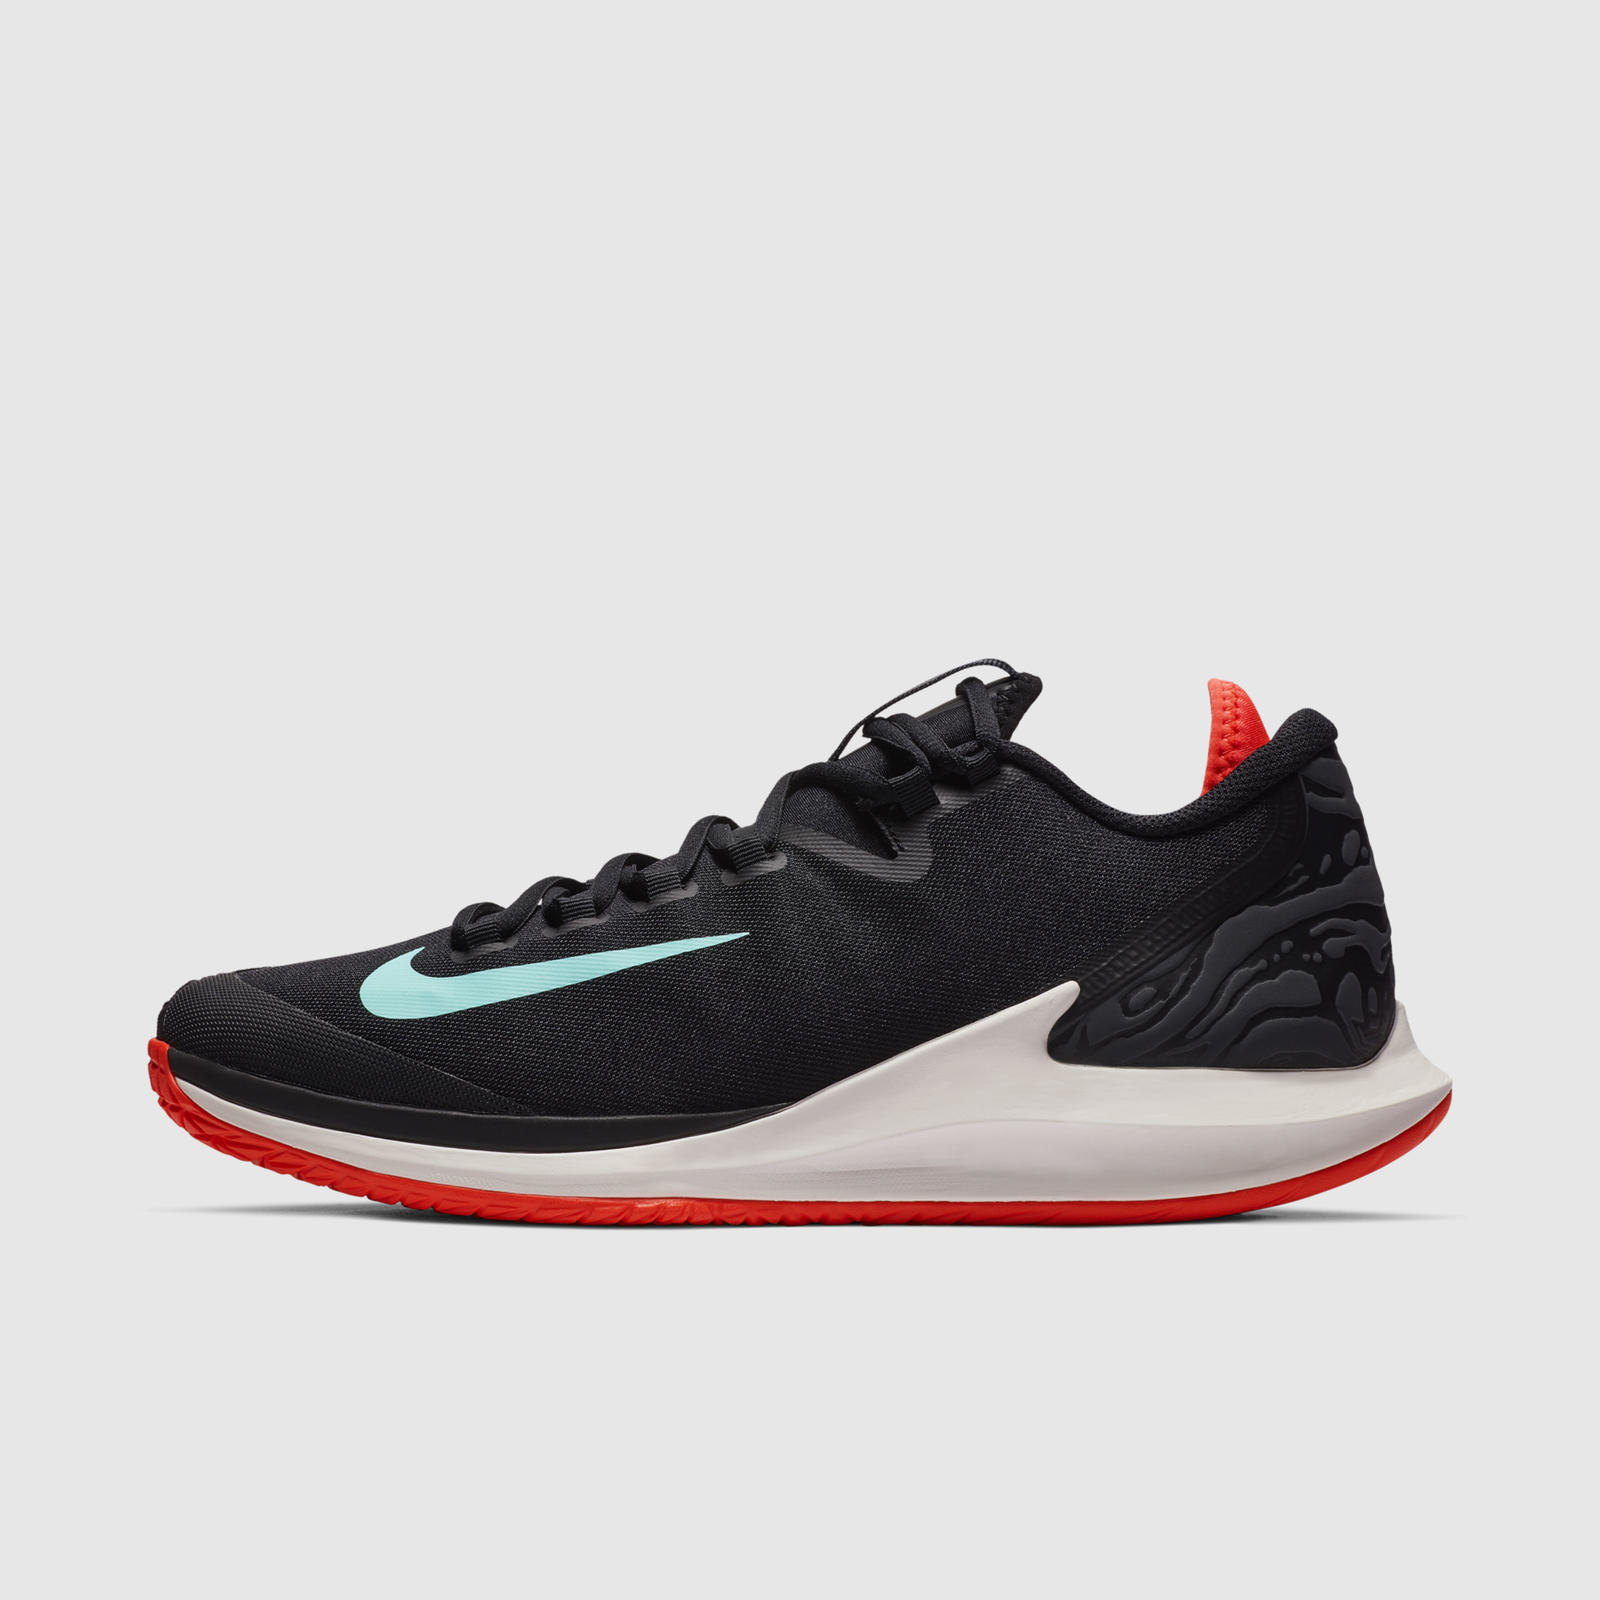 hot sale online f694c cb6d4 Vintage Vibes, Future Fabrics for the NikeCourt Melbourne Collection 2